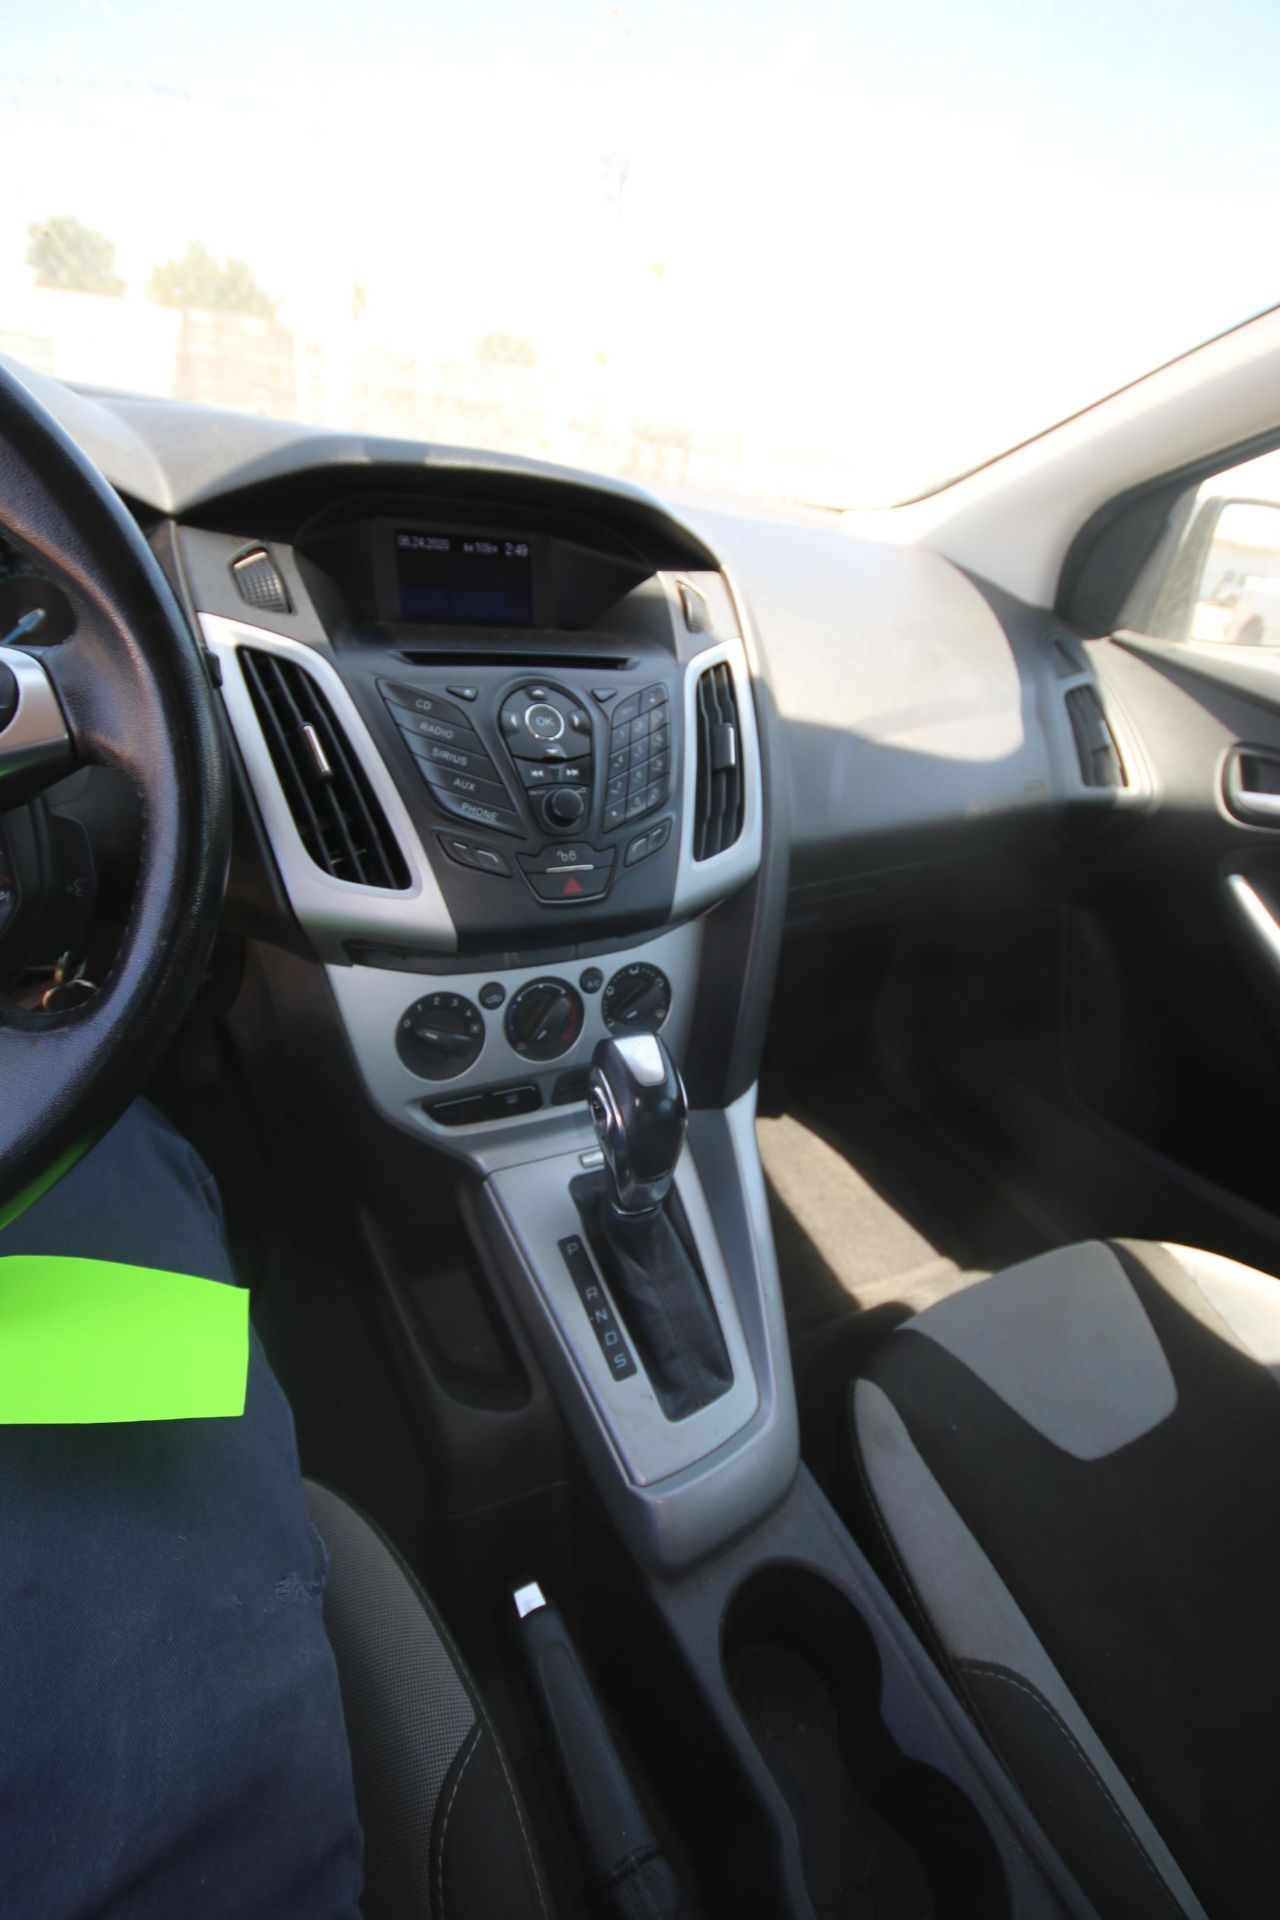 2012 White Ford Focus SE Hatchback 4D, VIN #: 1FAHP3K27CL423326, with 116,017 Miles, with 4-Doors, - Image 20 of 26